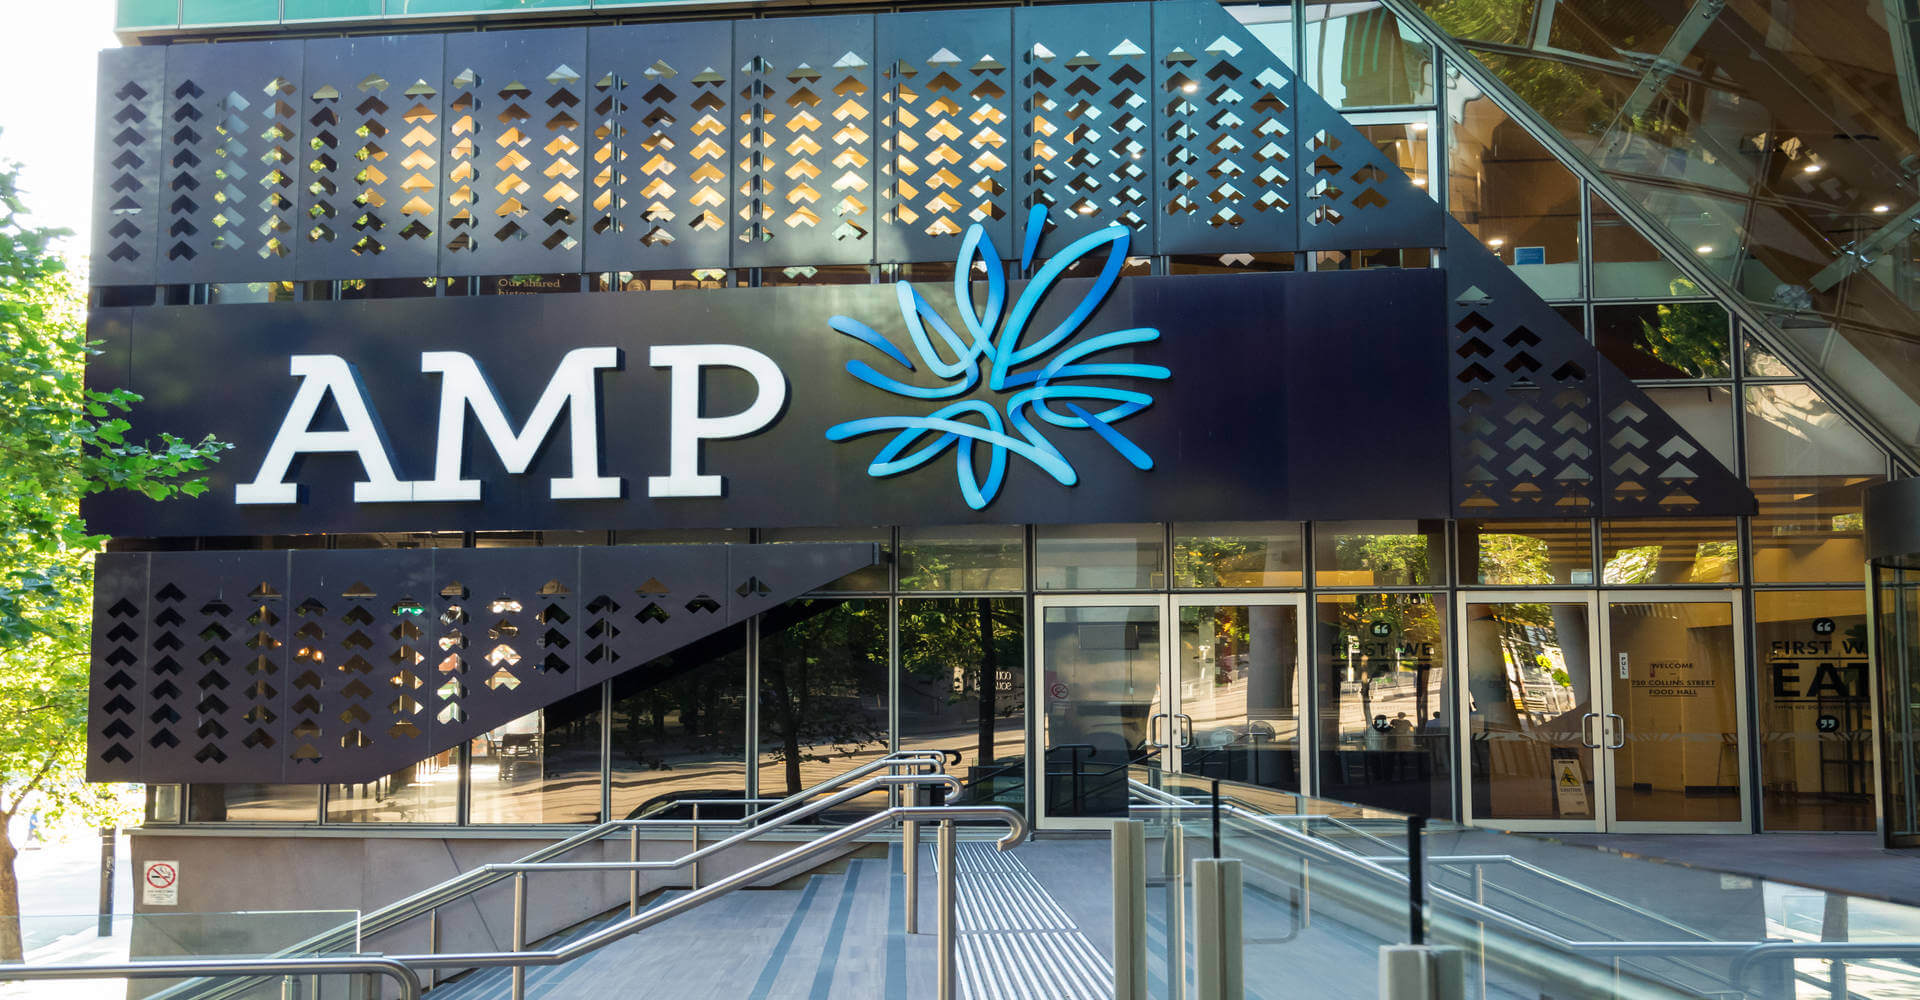 AMP's life insurance arm hit with class action over 'inflated' insurance  policies | Lawyerly